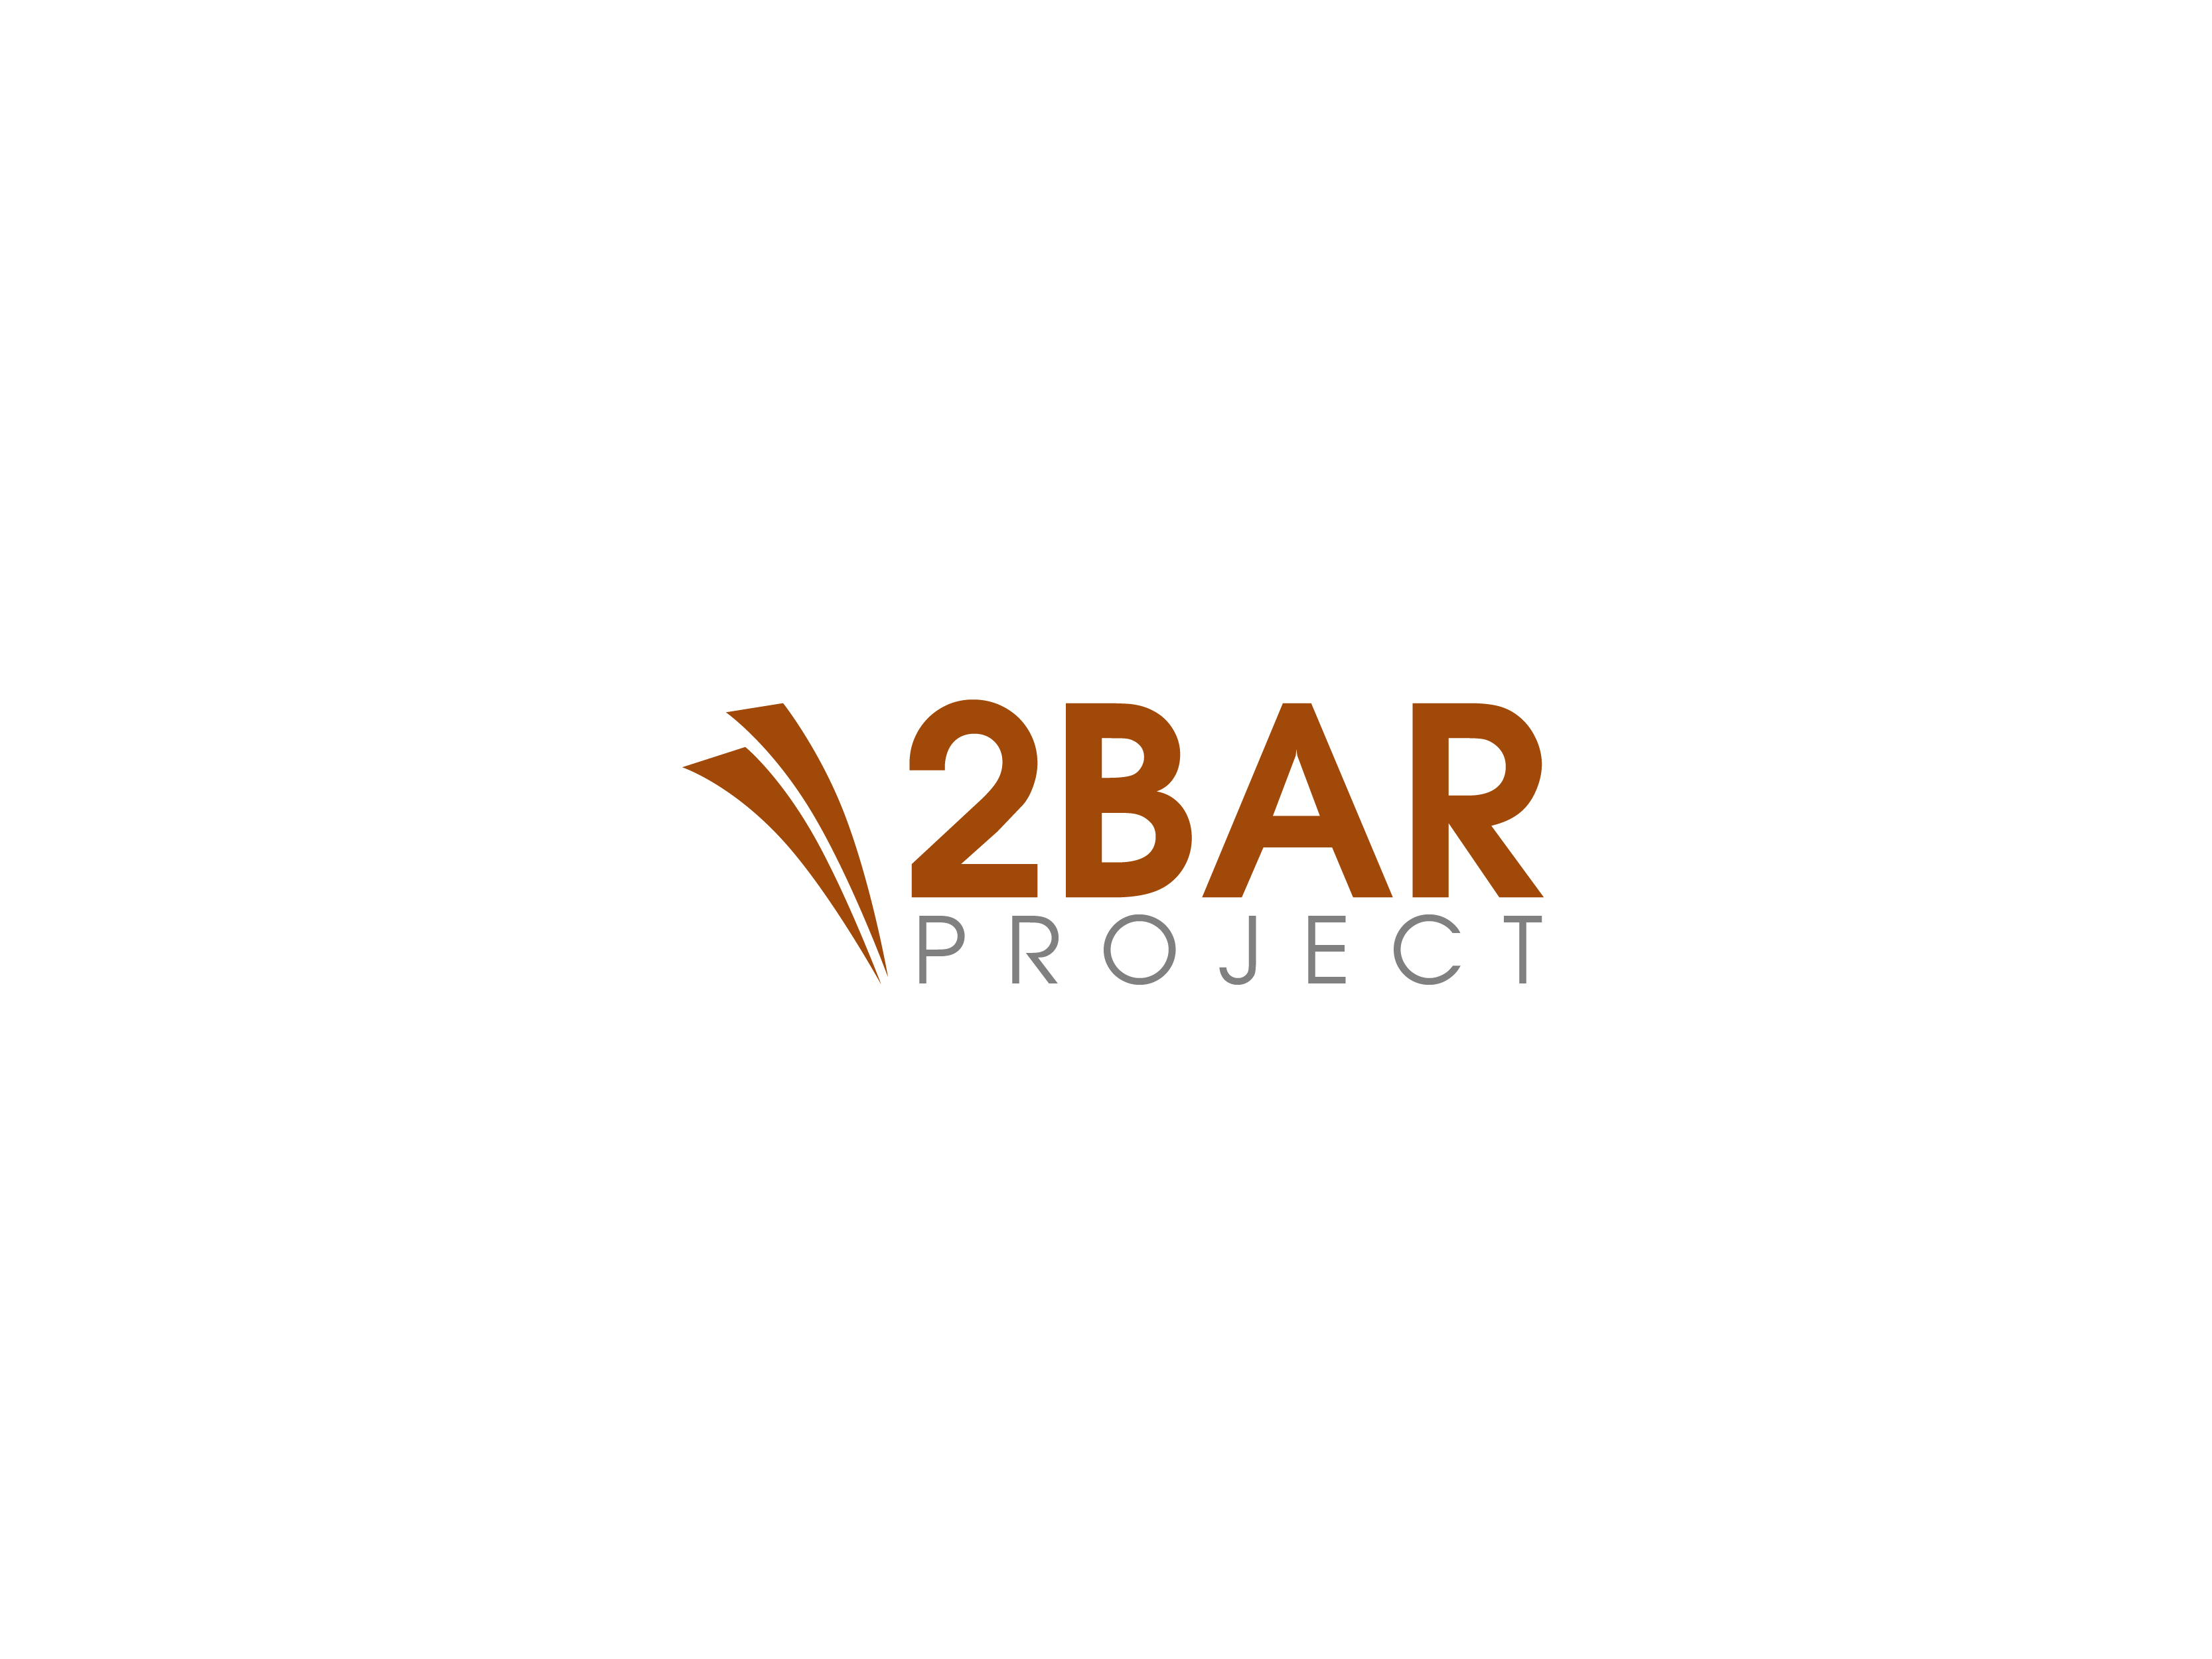 Logo Design by Private User - Entry No. 6 in the Logo Design Contest 2BAR - Imaginative Logo Design for Discovery Harbour Resources Corp..